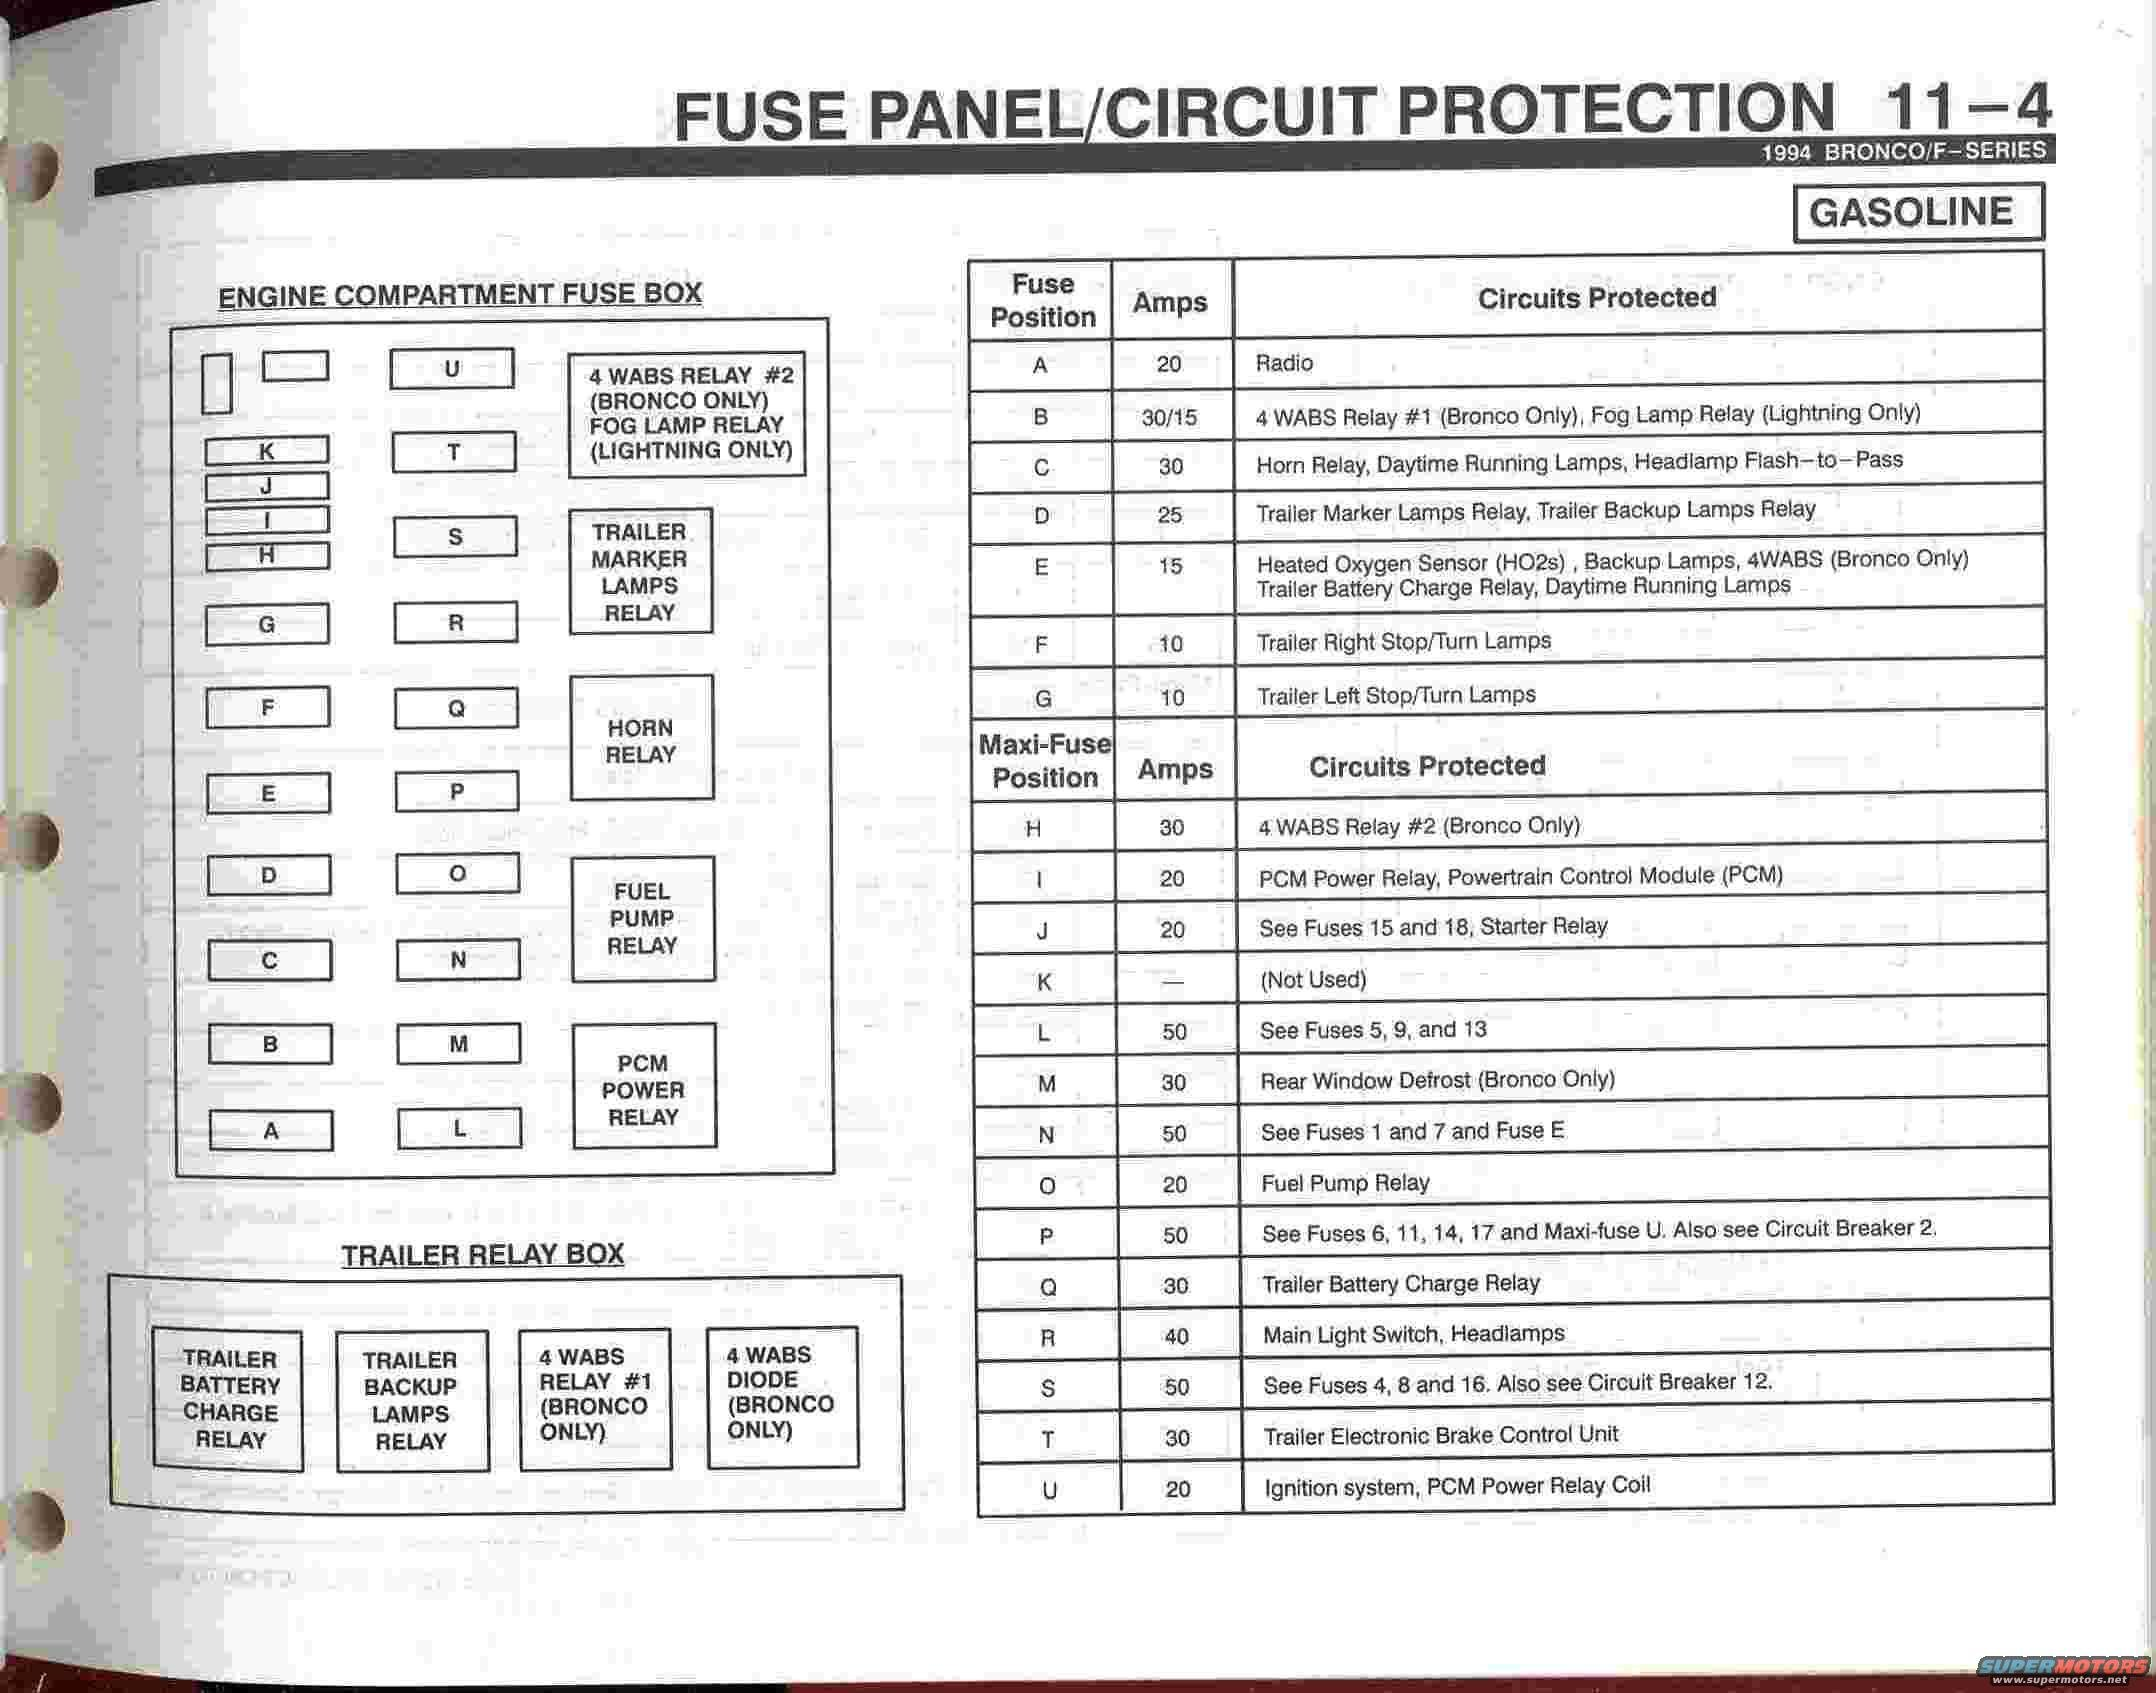 1996 ford bronco fuse box diagram 89 full size ford bronco fuse panel diagram my 94 bronco endless restoration and build - page 61 ...